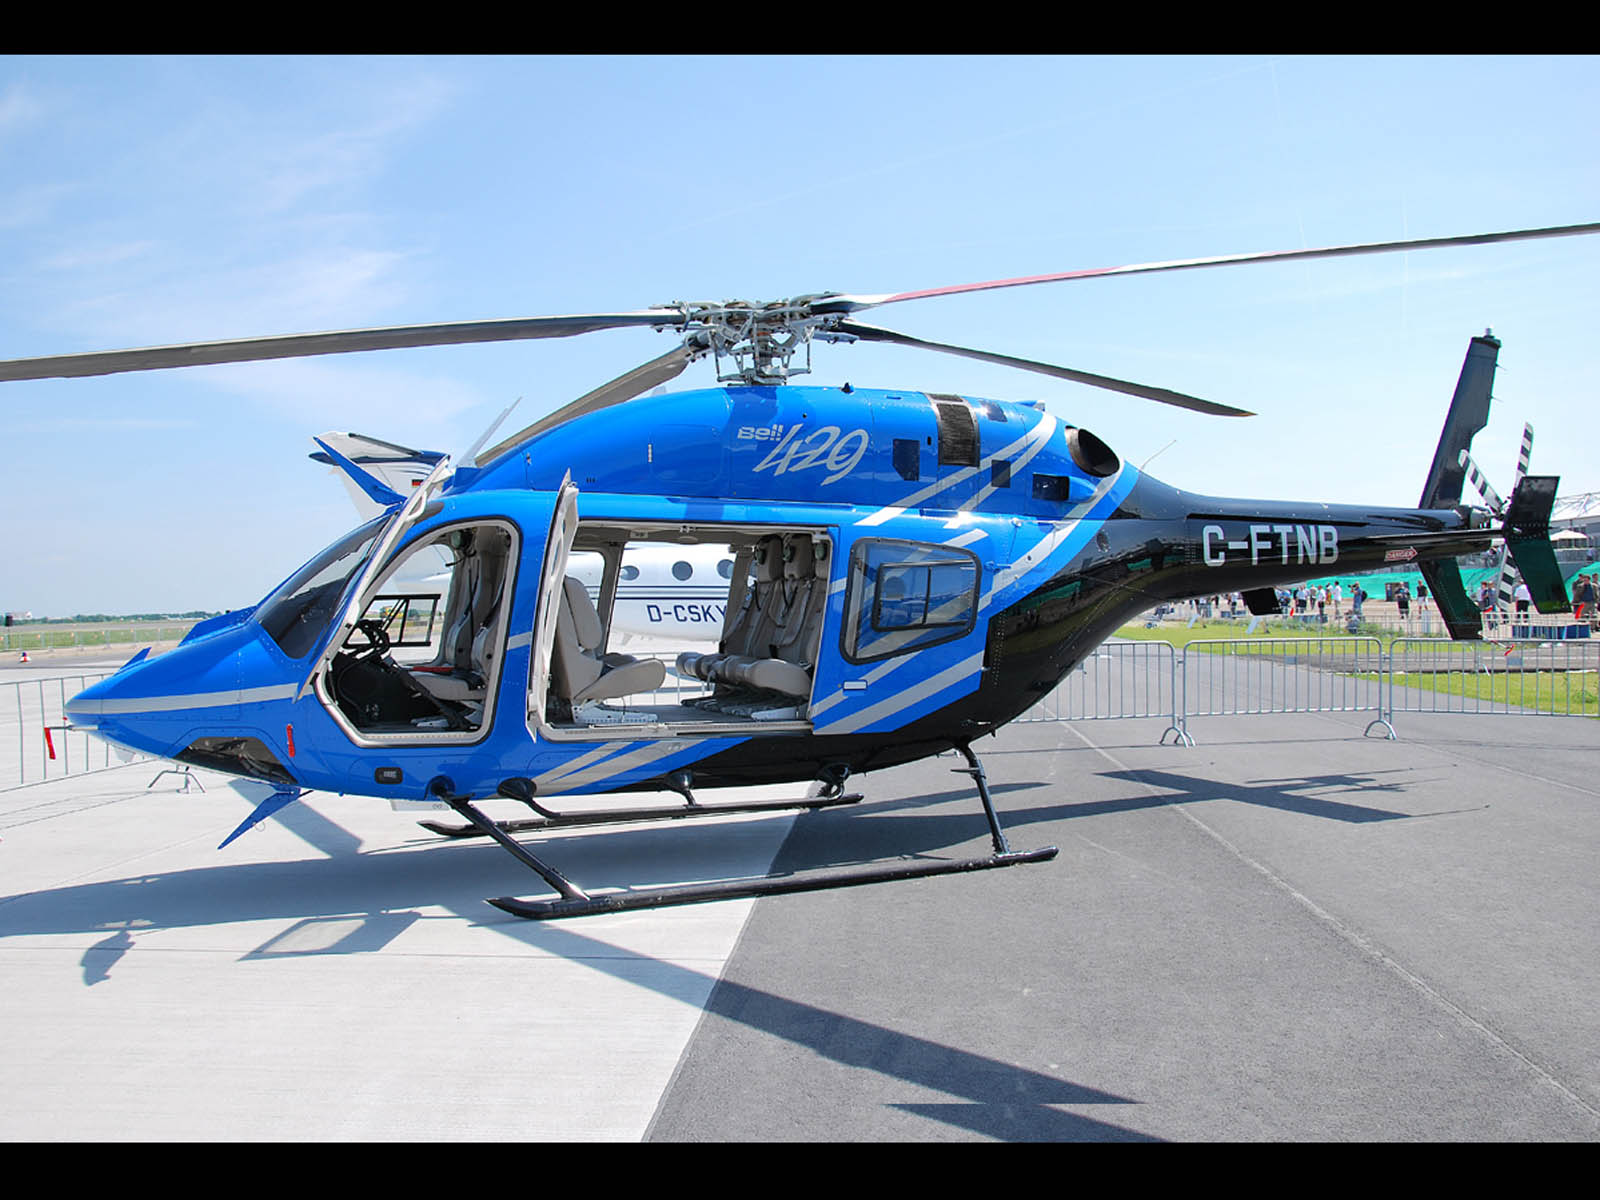 Beautiful Cars Hd Wallpapers Download Wallpapers Bell 429 Globalranger Helicopter